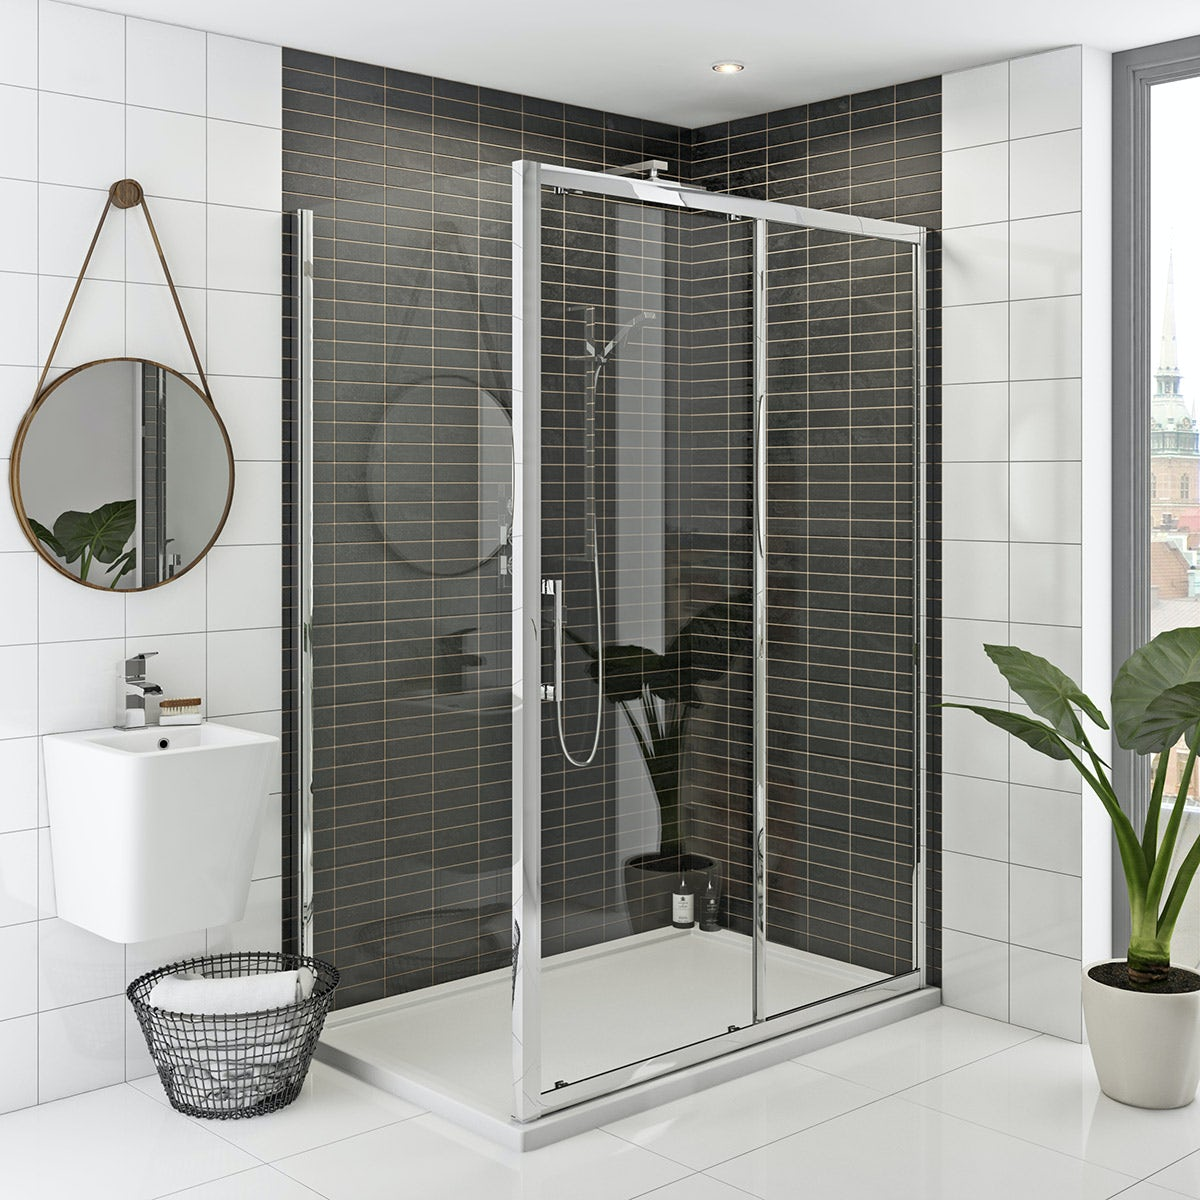 Mode Hardy premium 8mm easy clean shower enclosure 1000 x 700